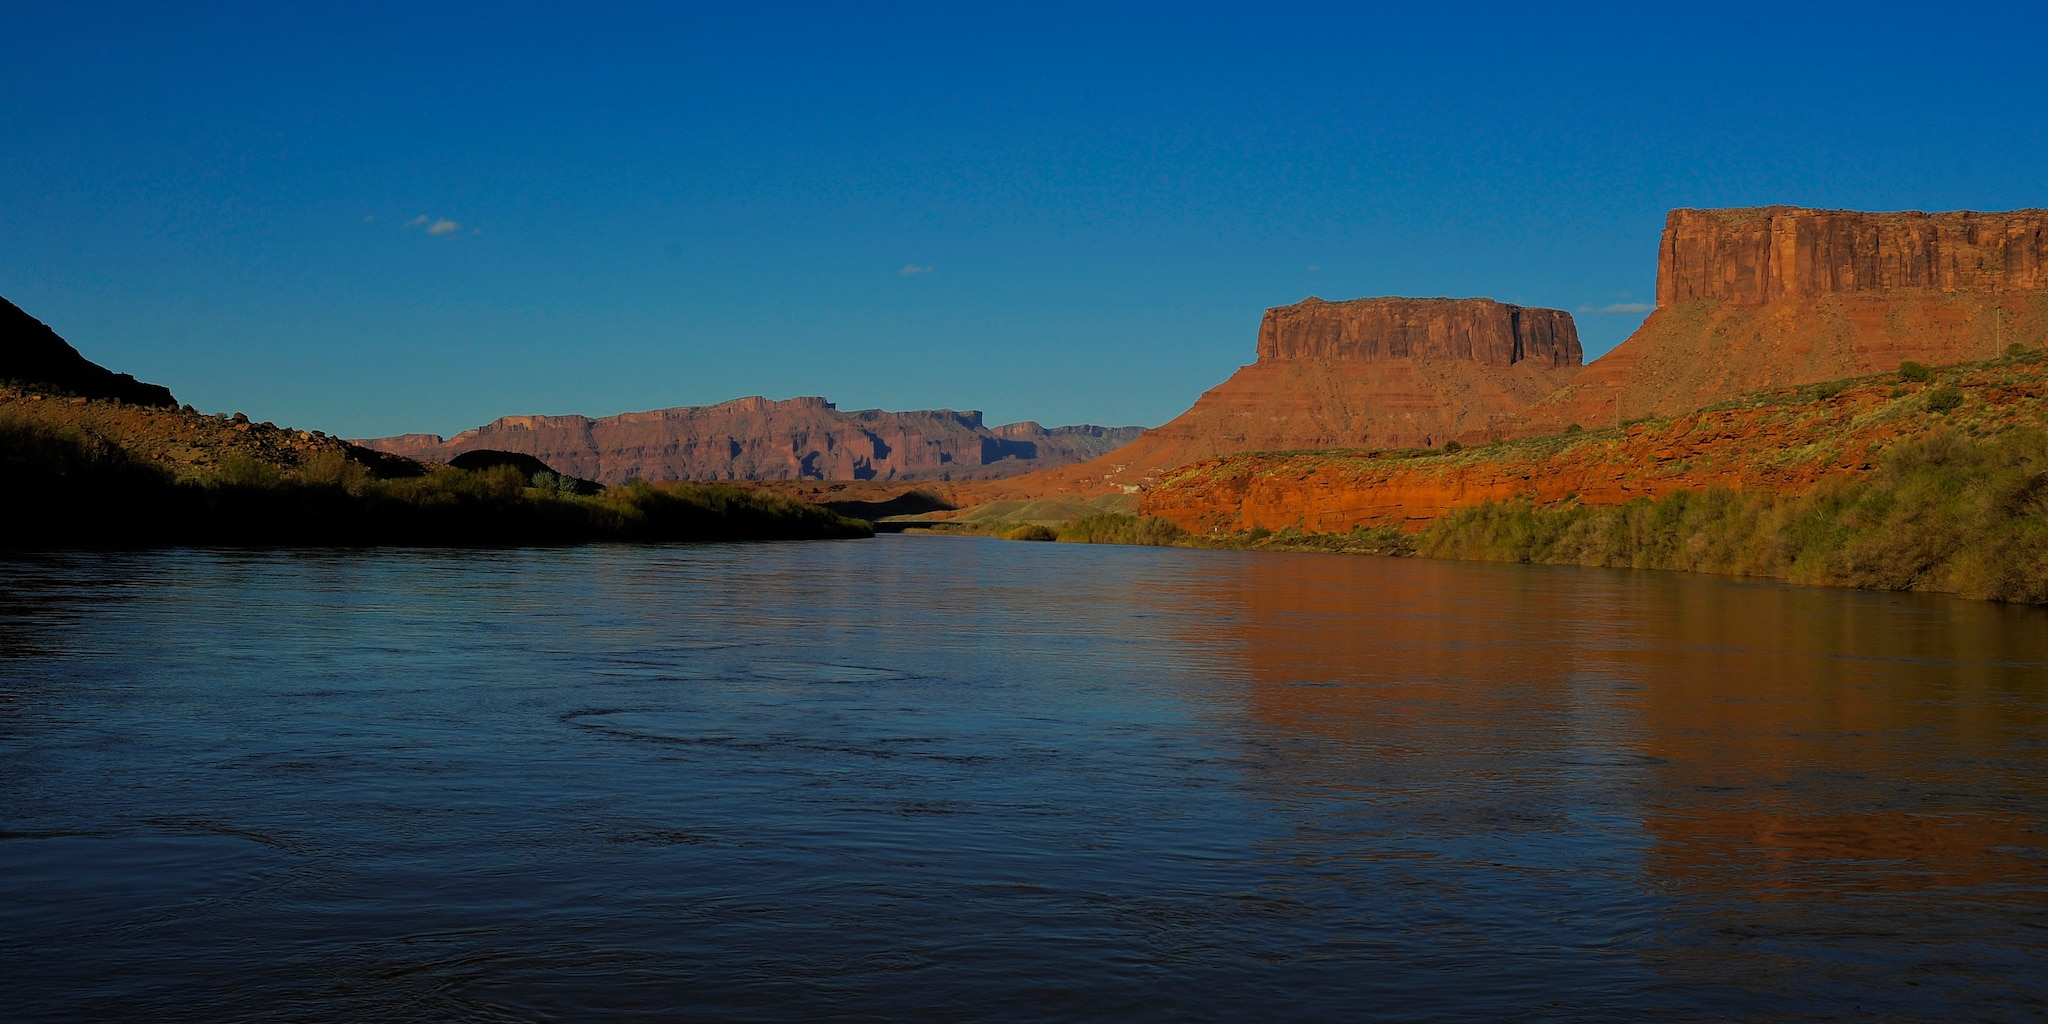 A tranquil area of the Colorado River surrounded by sandstone buttes